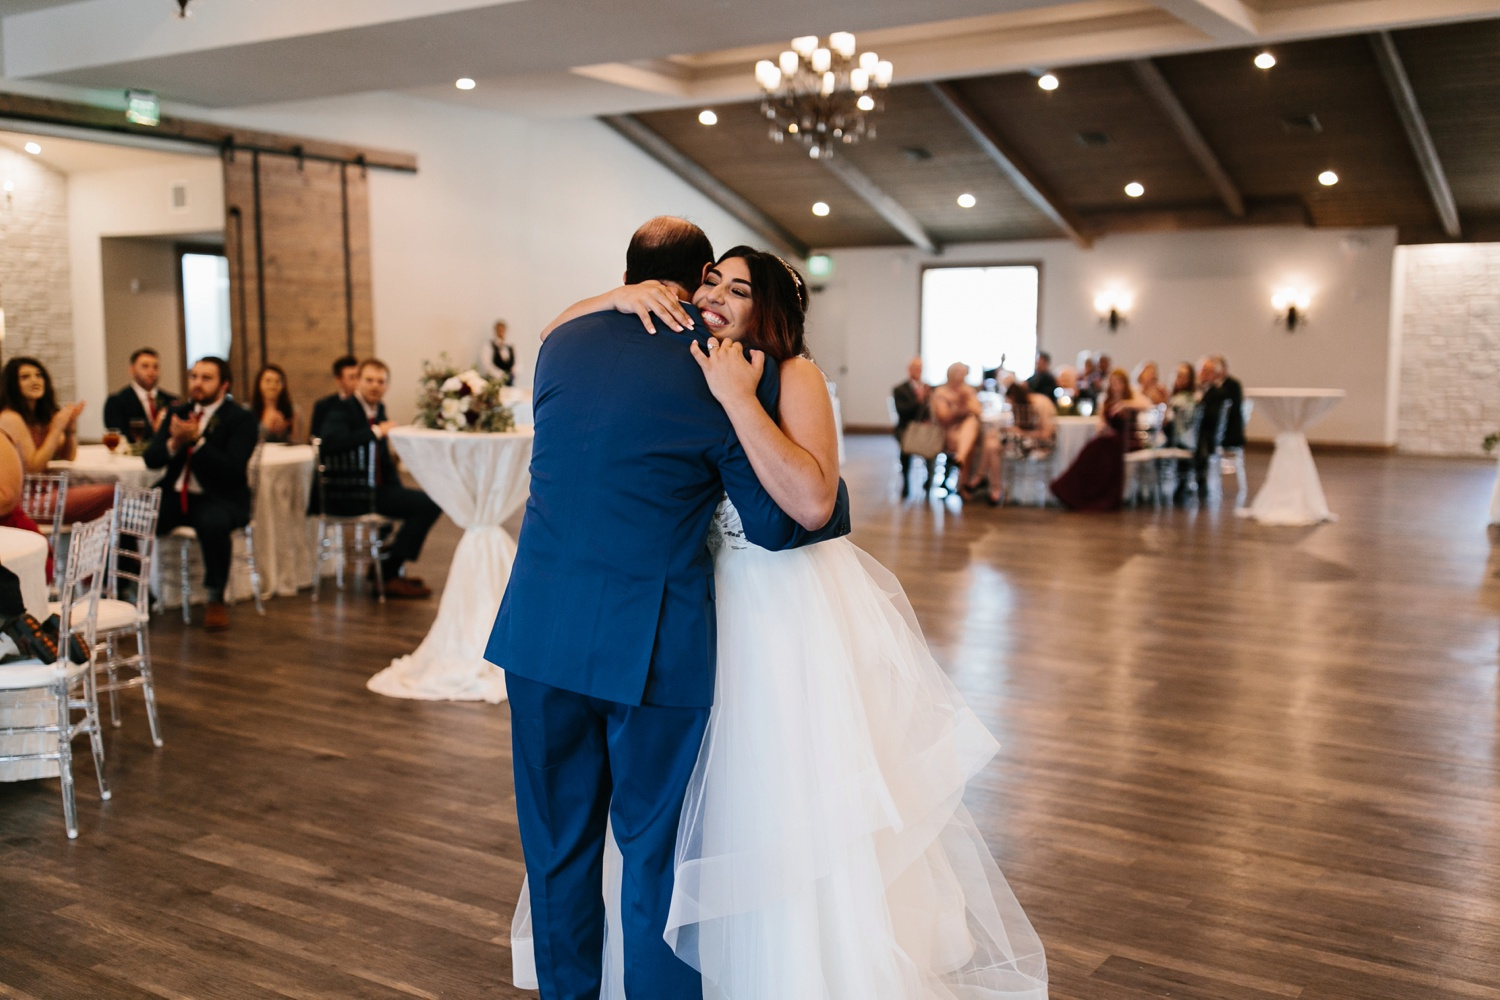 Grant + Lysette | a vibrant, deep burgundy and navy, and mixed metals wedding at Hidden Pines Chapel by North Texas Wedding Photographer Rachel Meagan Photography 139